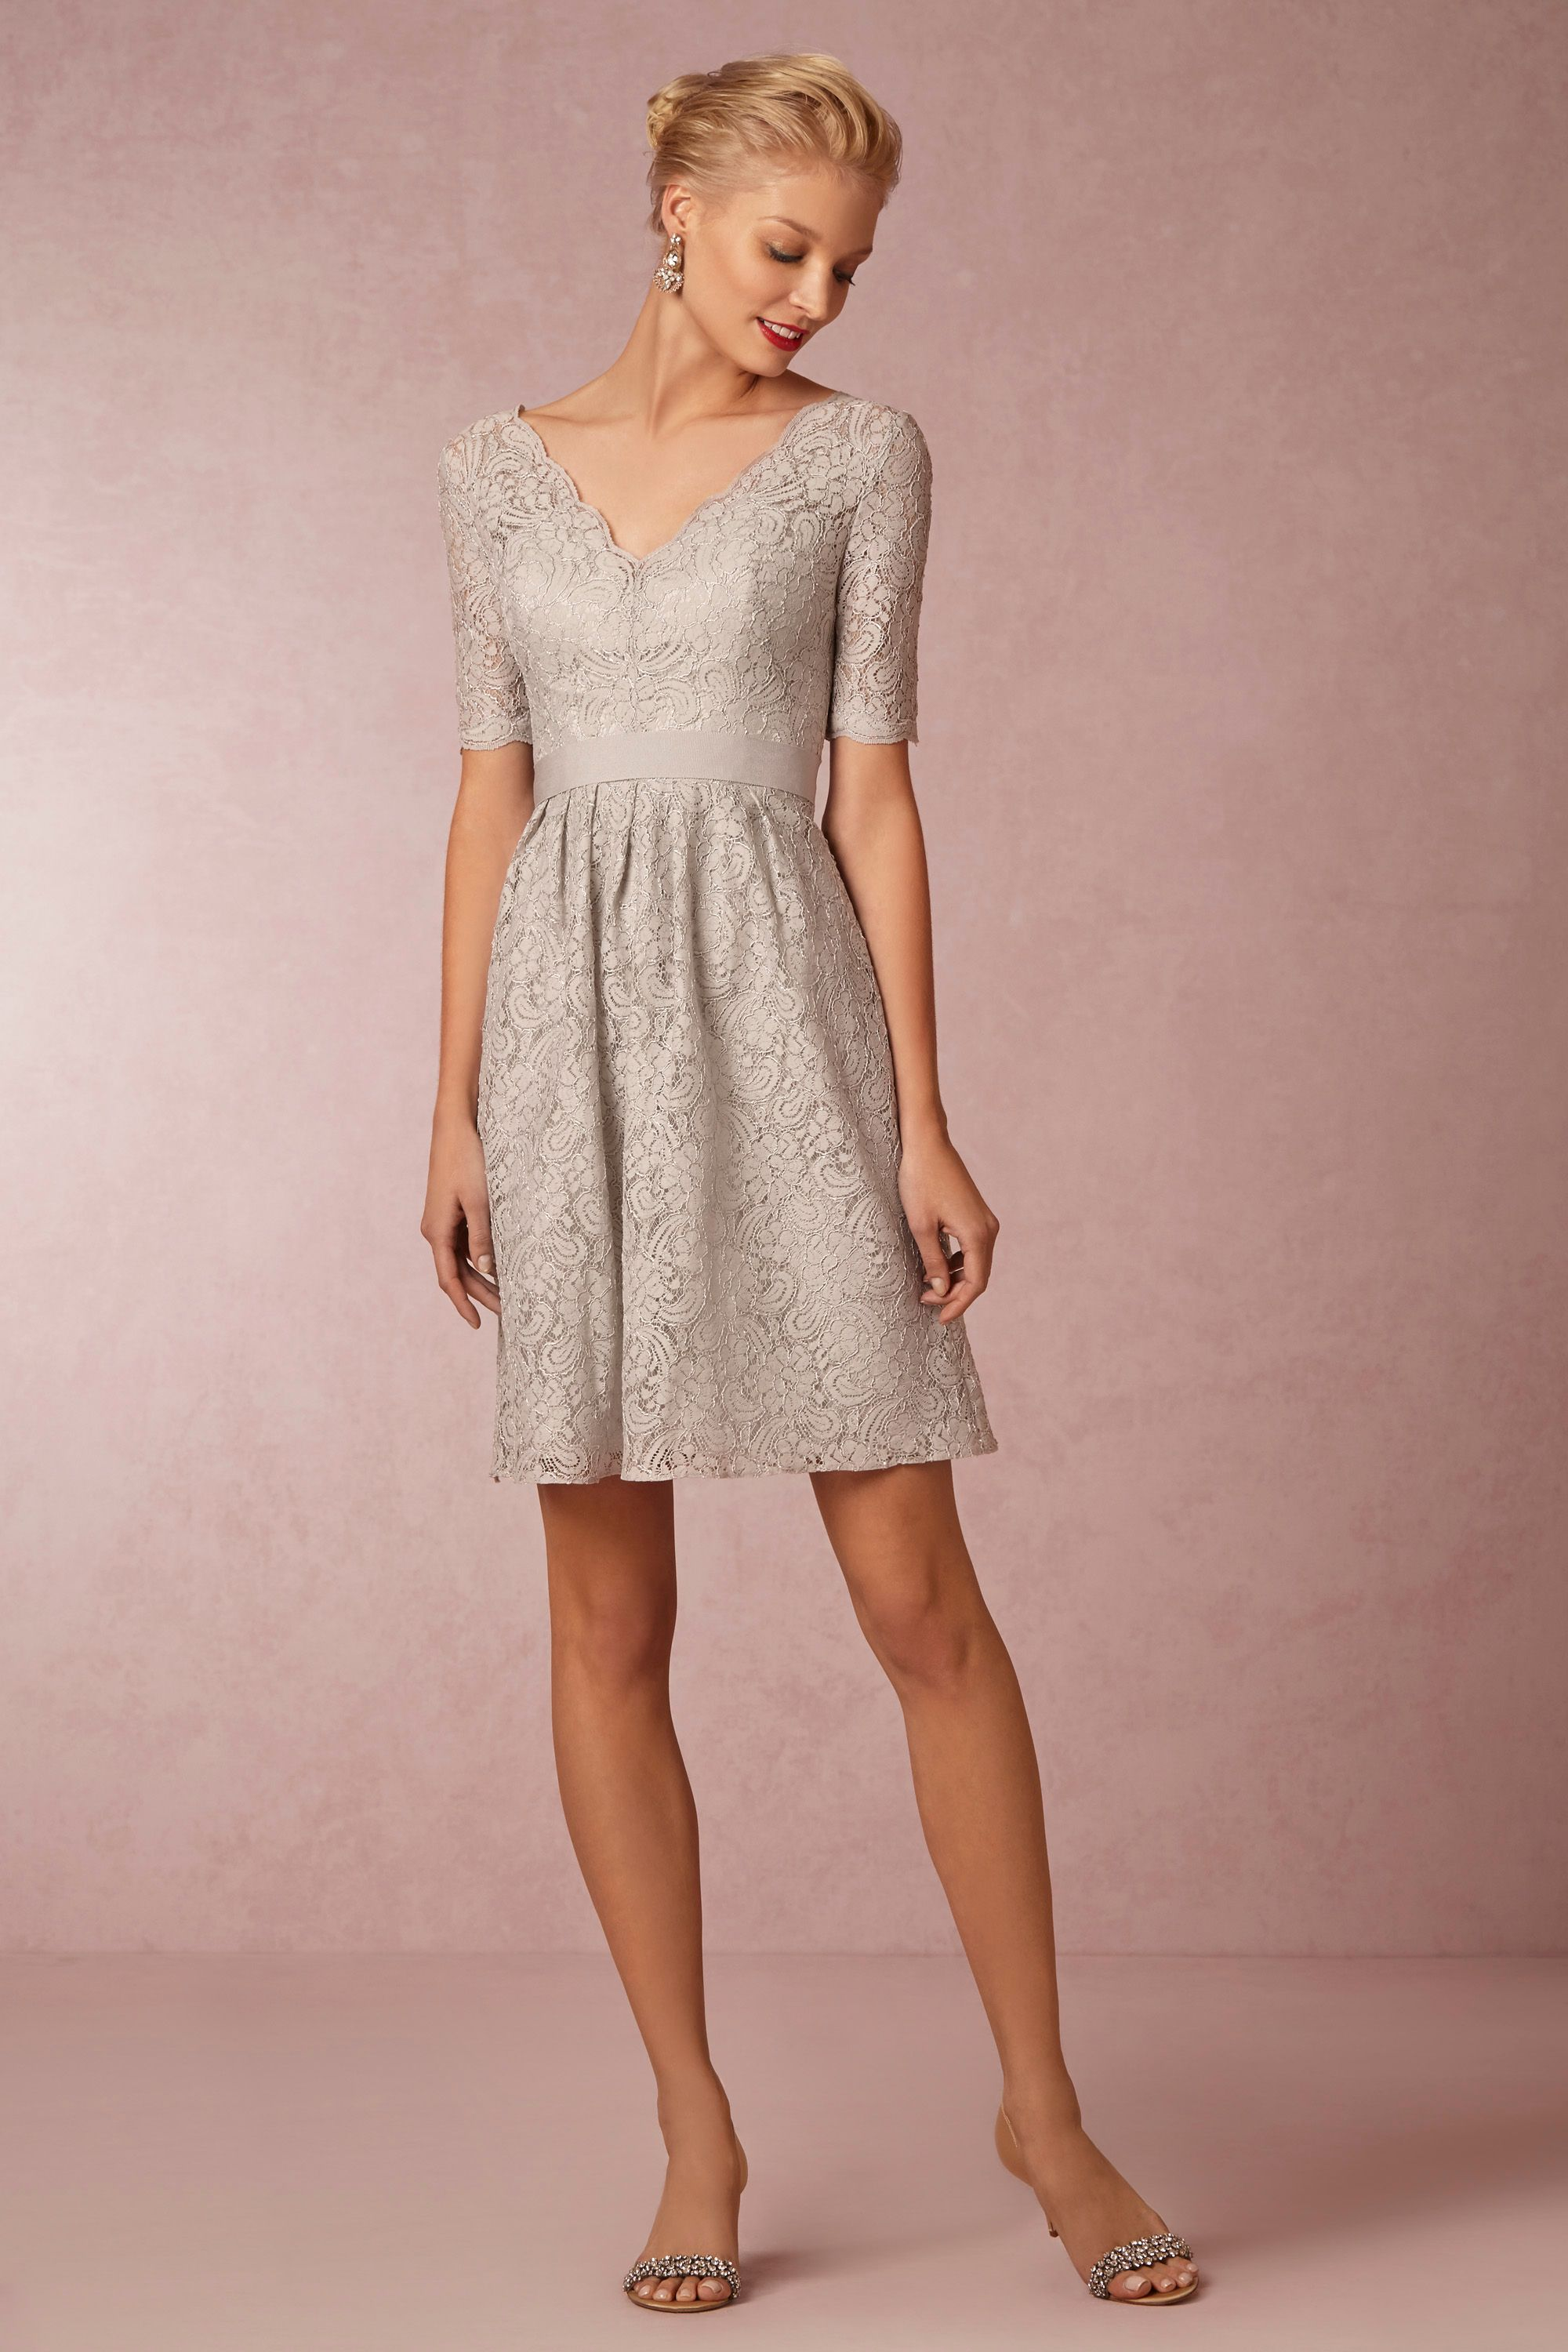 BHLDN Catania Dress in Sale Dresses at BHLDN | Meg\'s Wedding ...